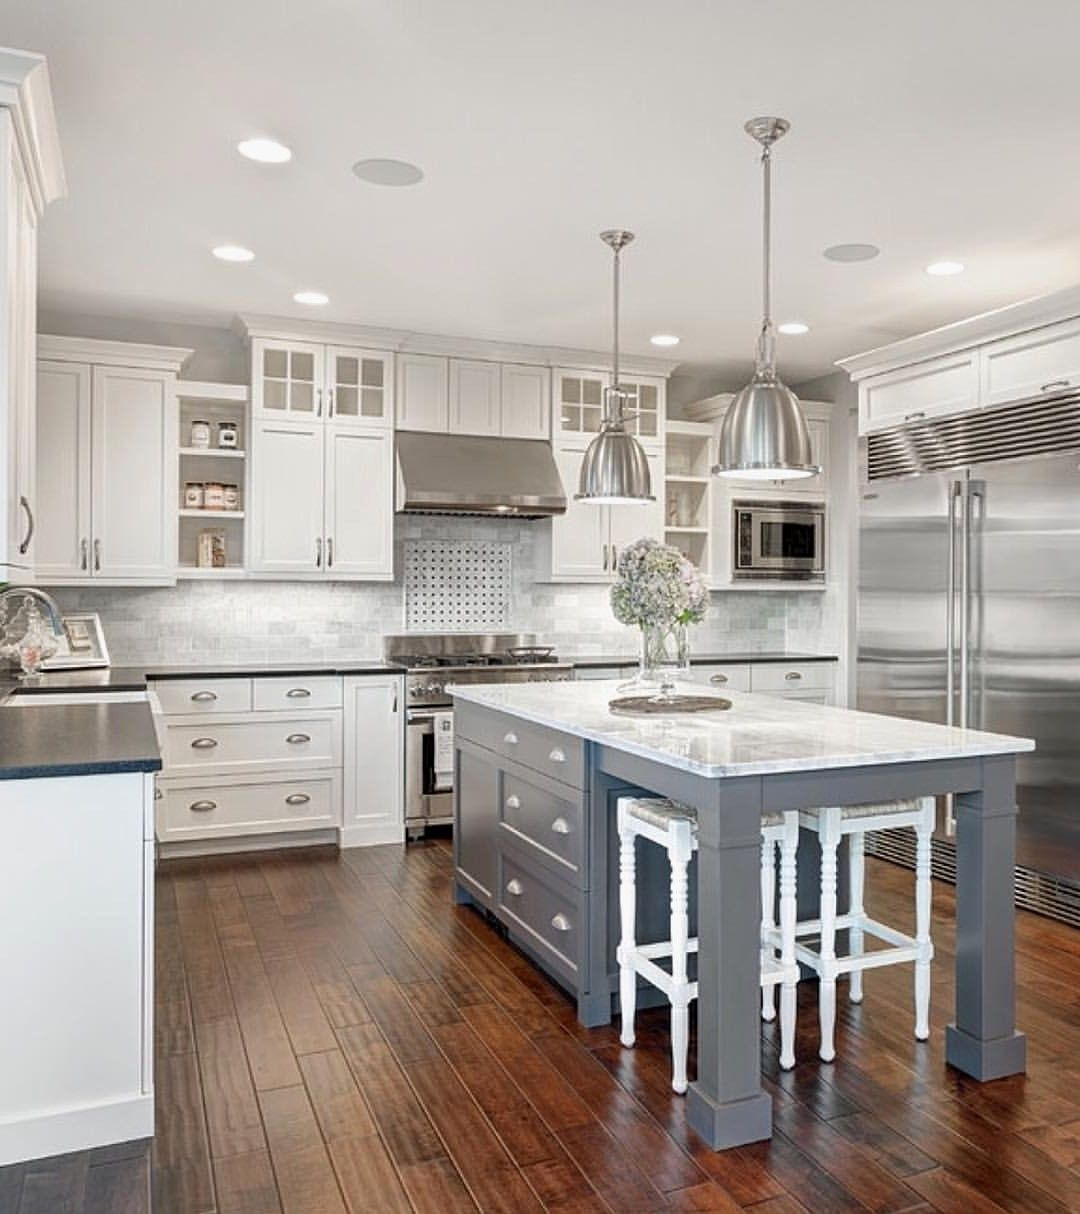 White Kitchen Cabinets Refinishing: White Kitchen Cabinets With Different Color Island Awesome